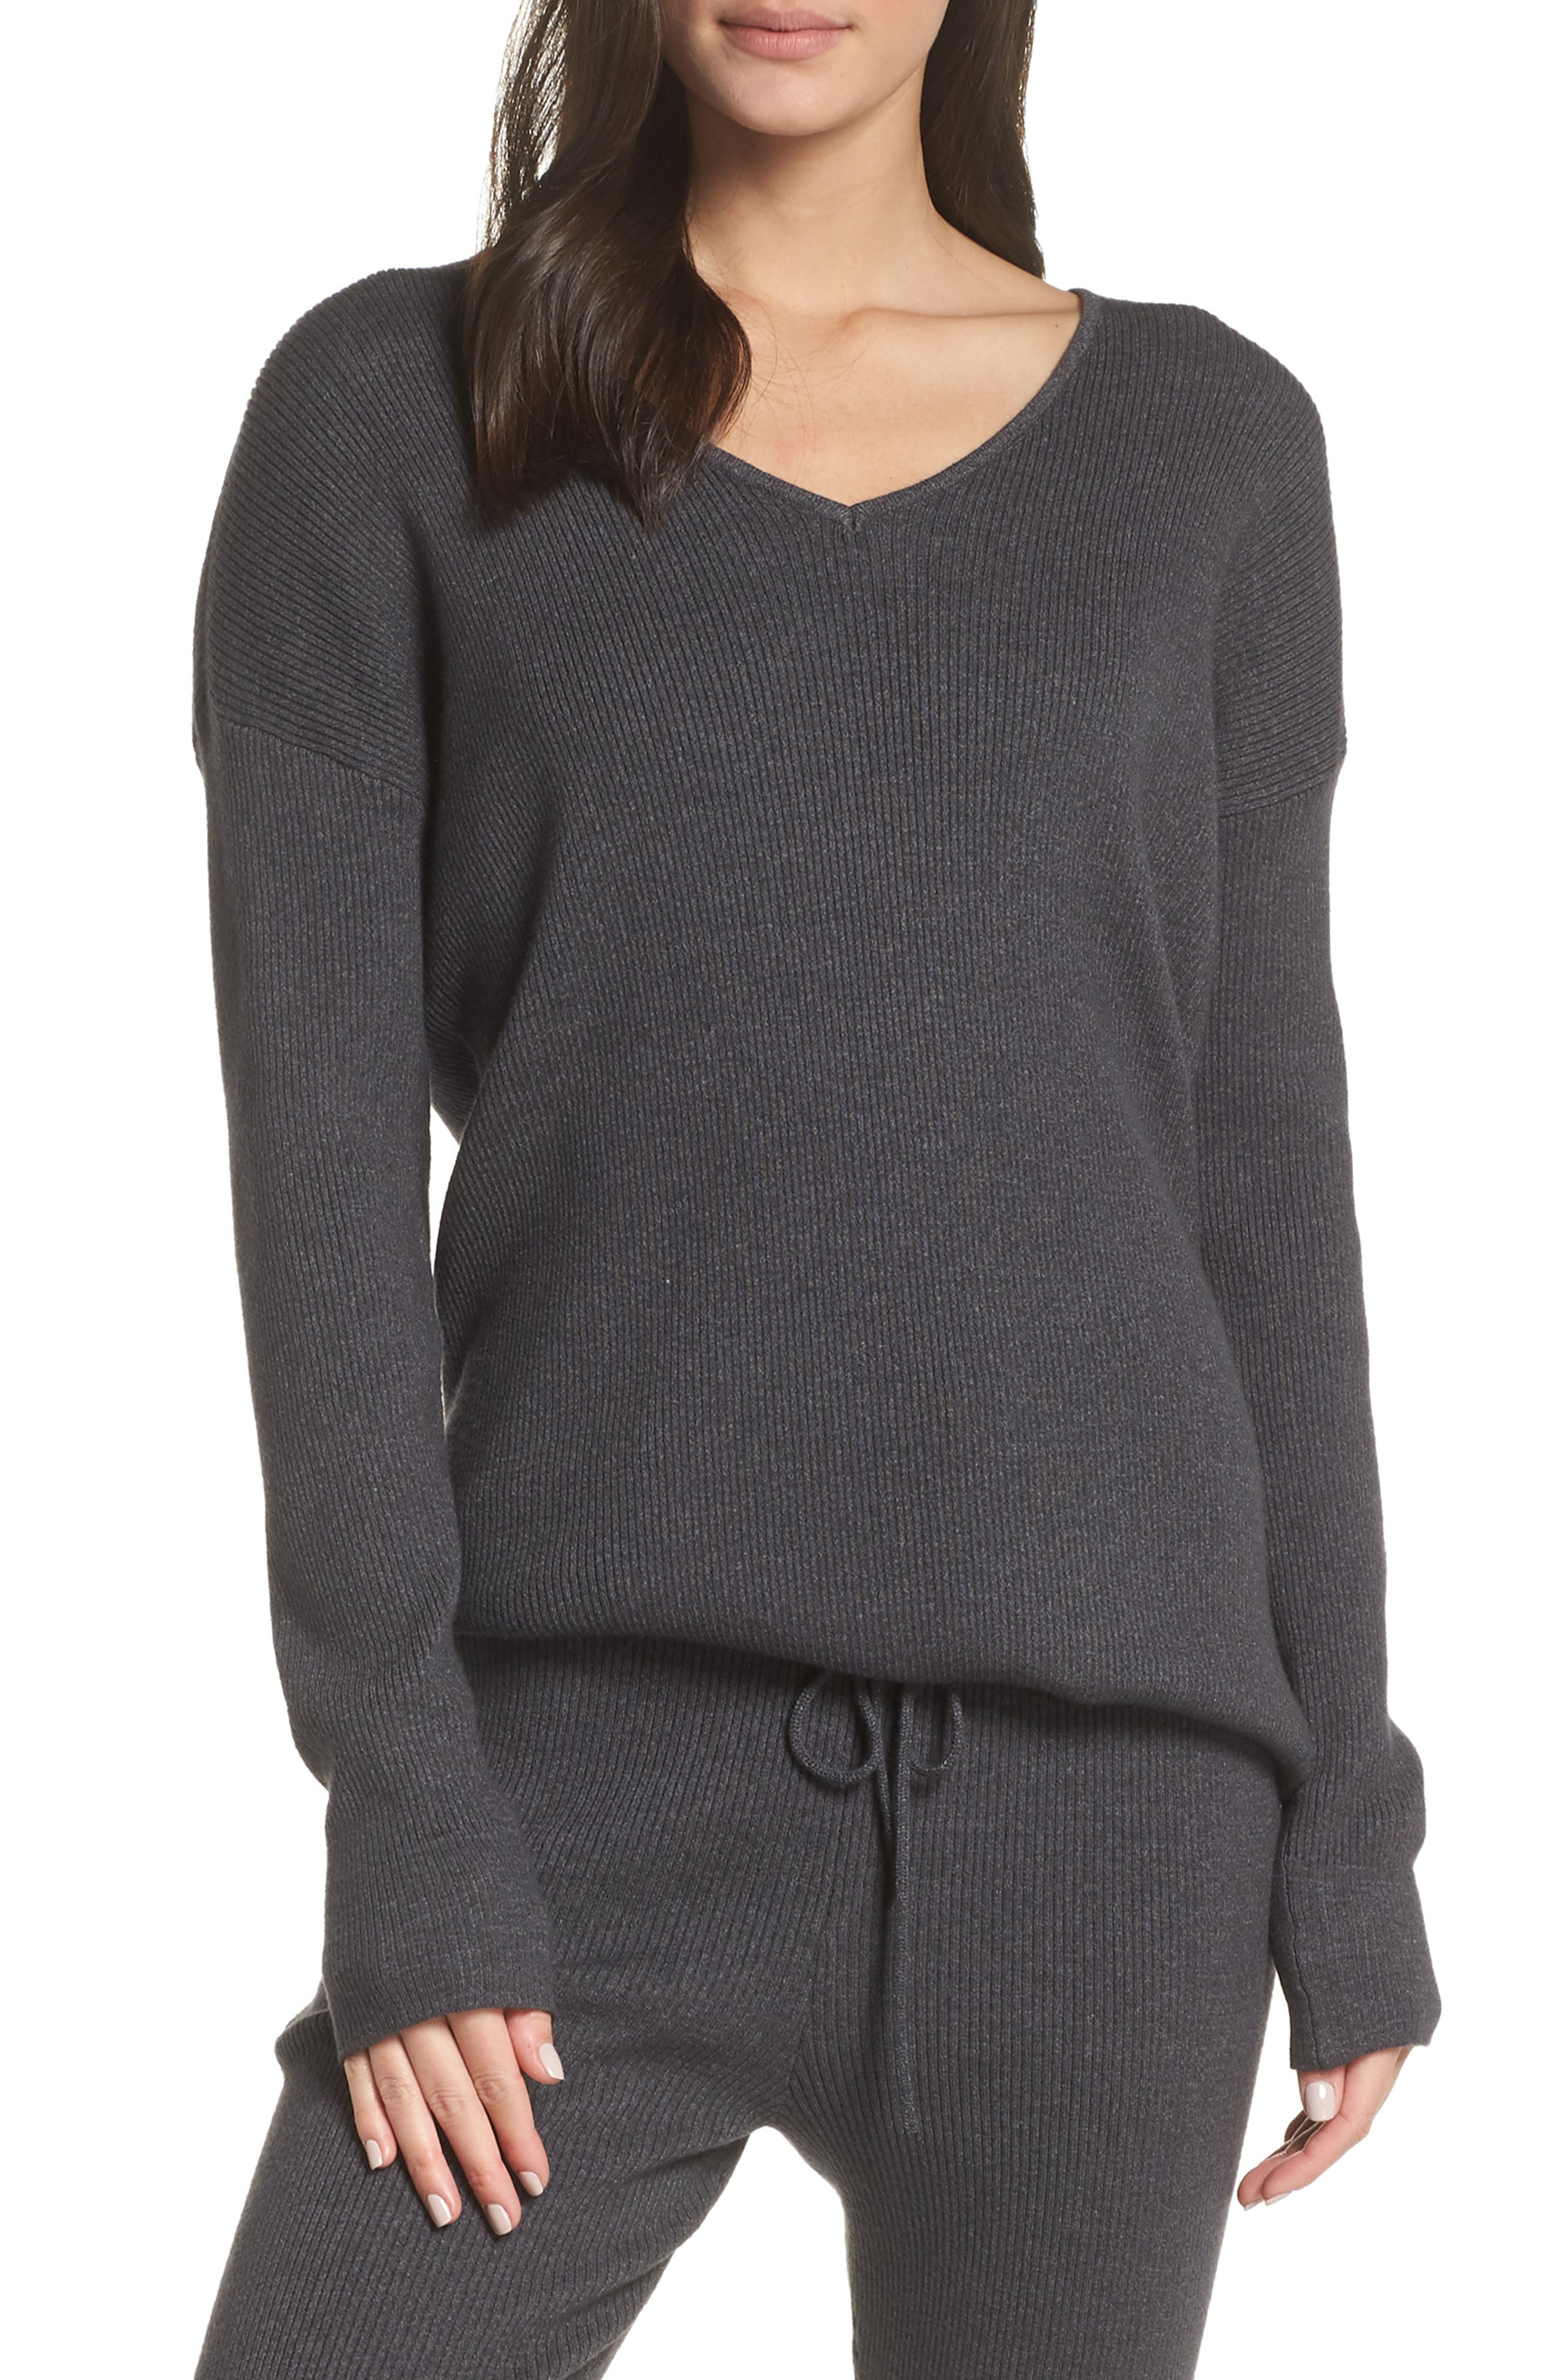 Rib Knit Pullover,                             Main thumbnail 1, color,                             GREY MED CHARCOAL HEATHER